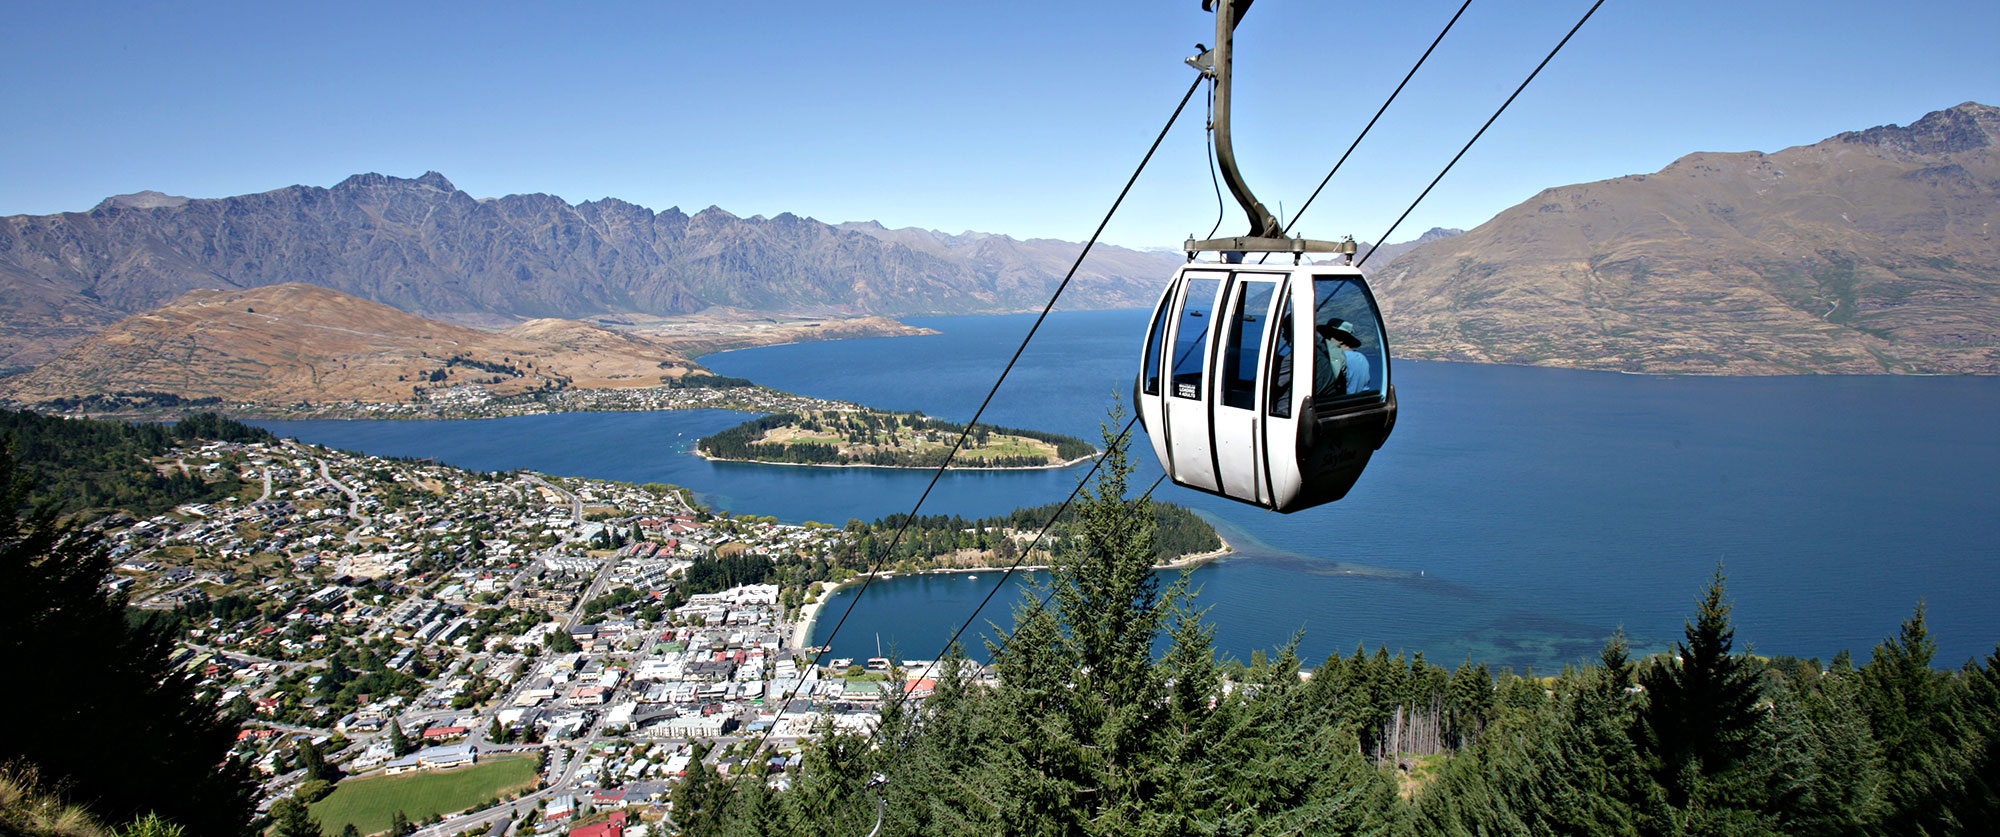 New Zealand Family Vacation: Queenstown Adventure